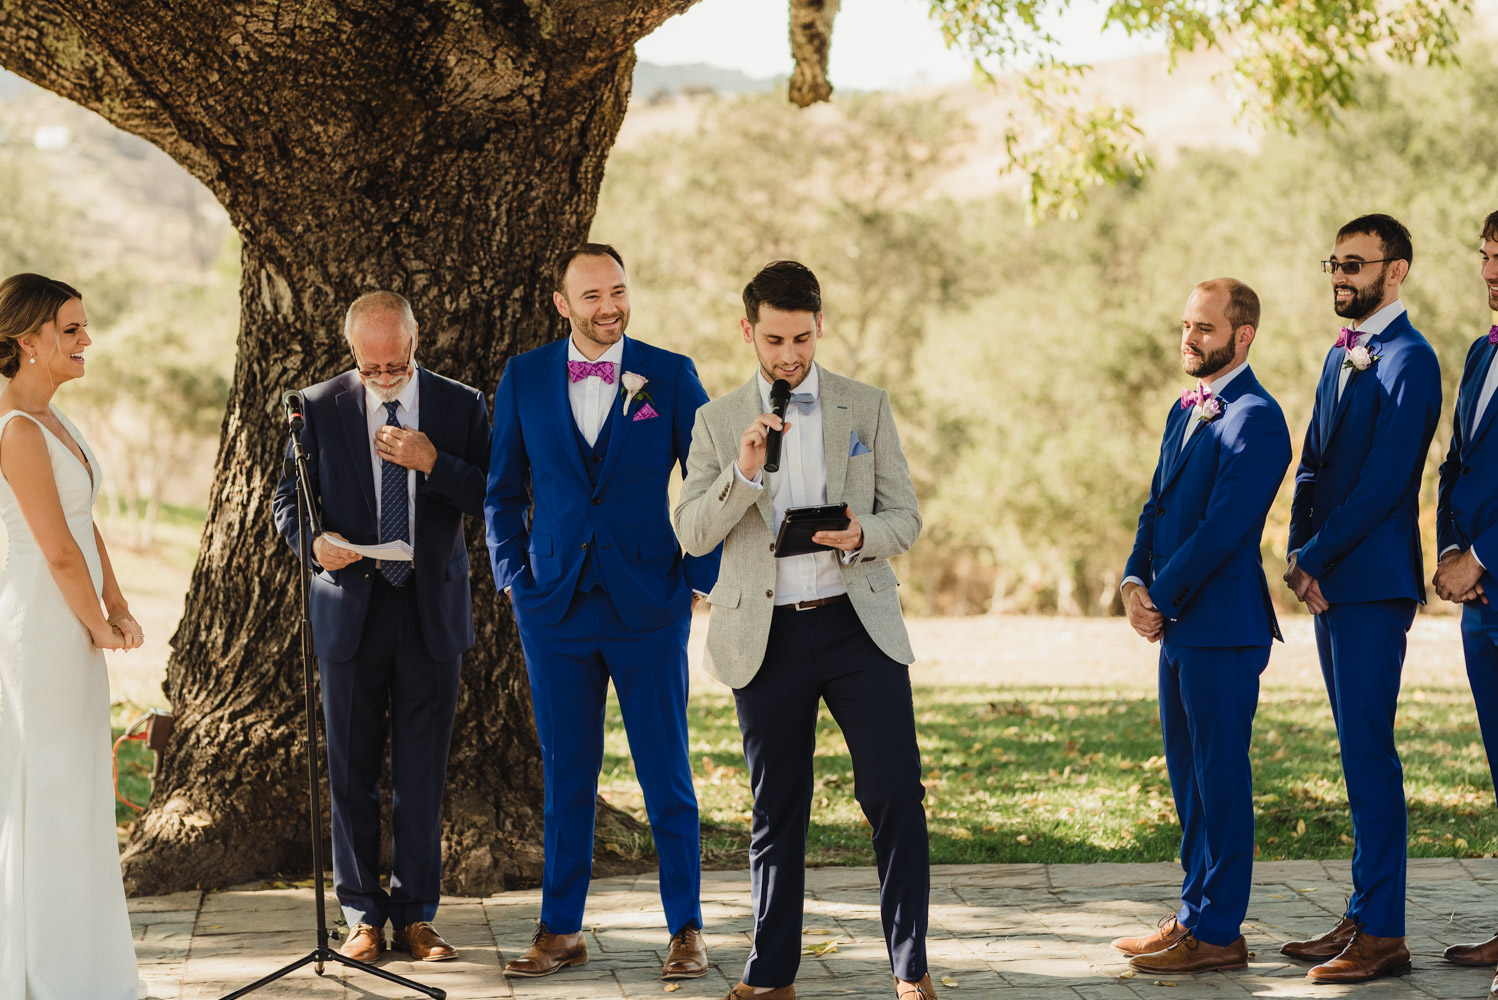 Triple S Ranch Wedding Venue, friend reading a poem during the ceremony photo